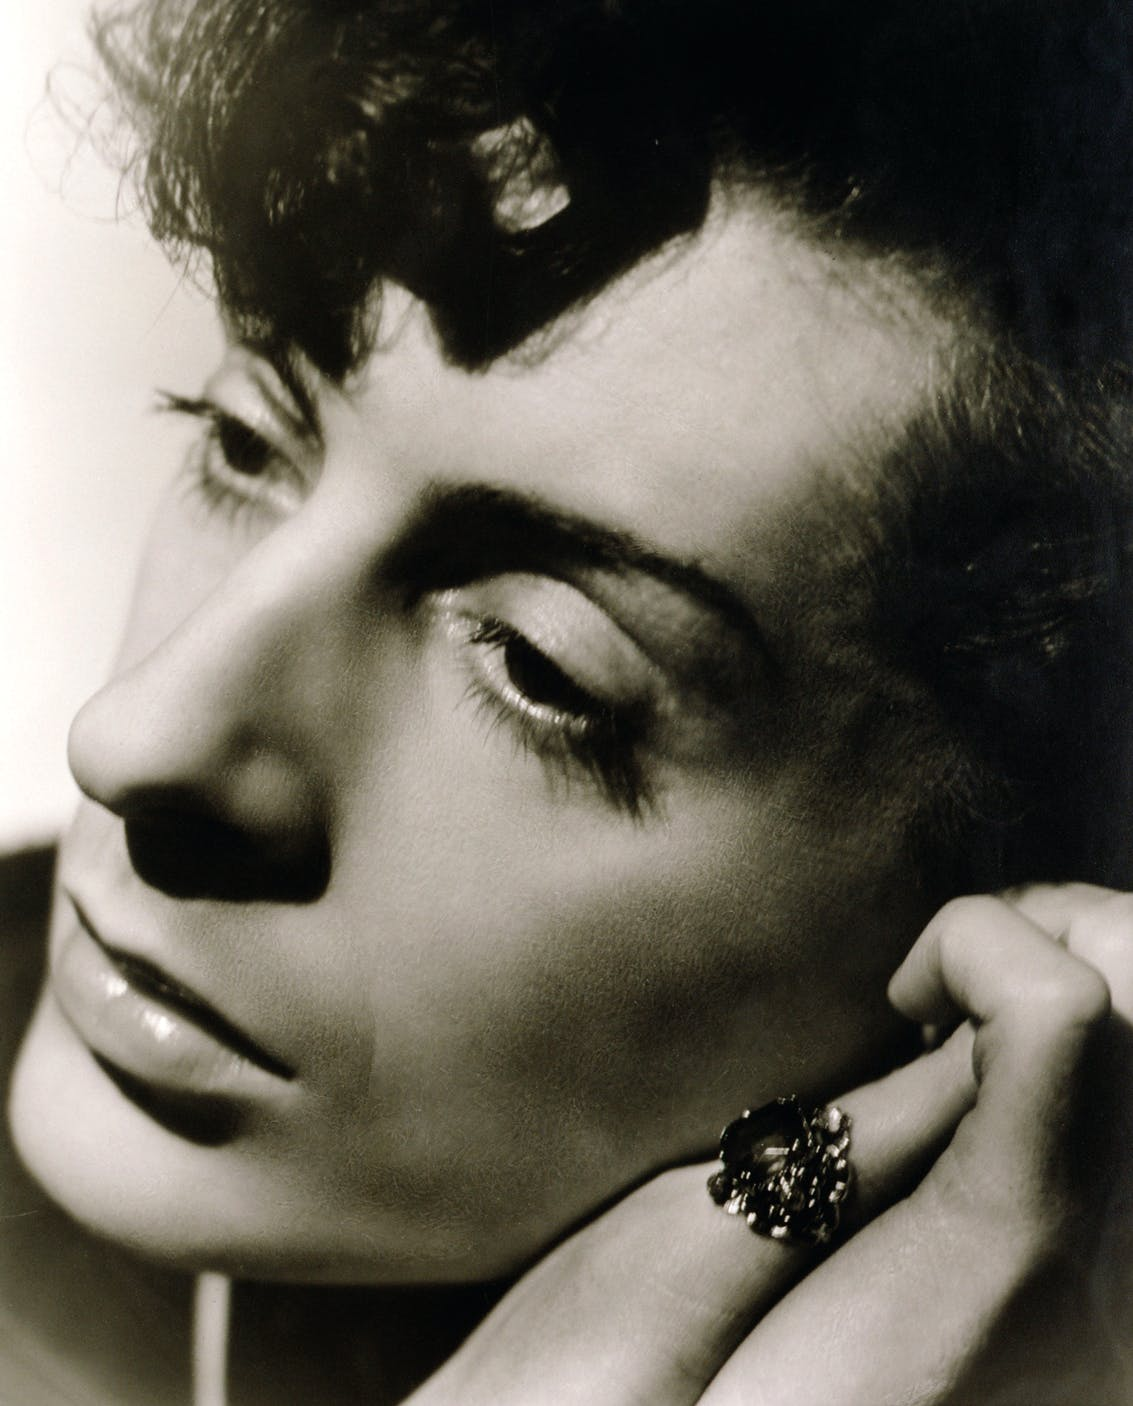 Quentin Crisp (1941), Angus McBean. © Estate of Angus McBean / National Portrait Gallery, London